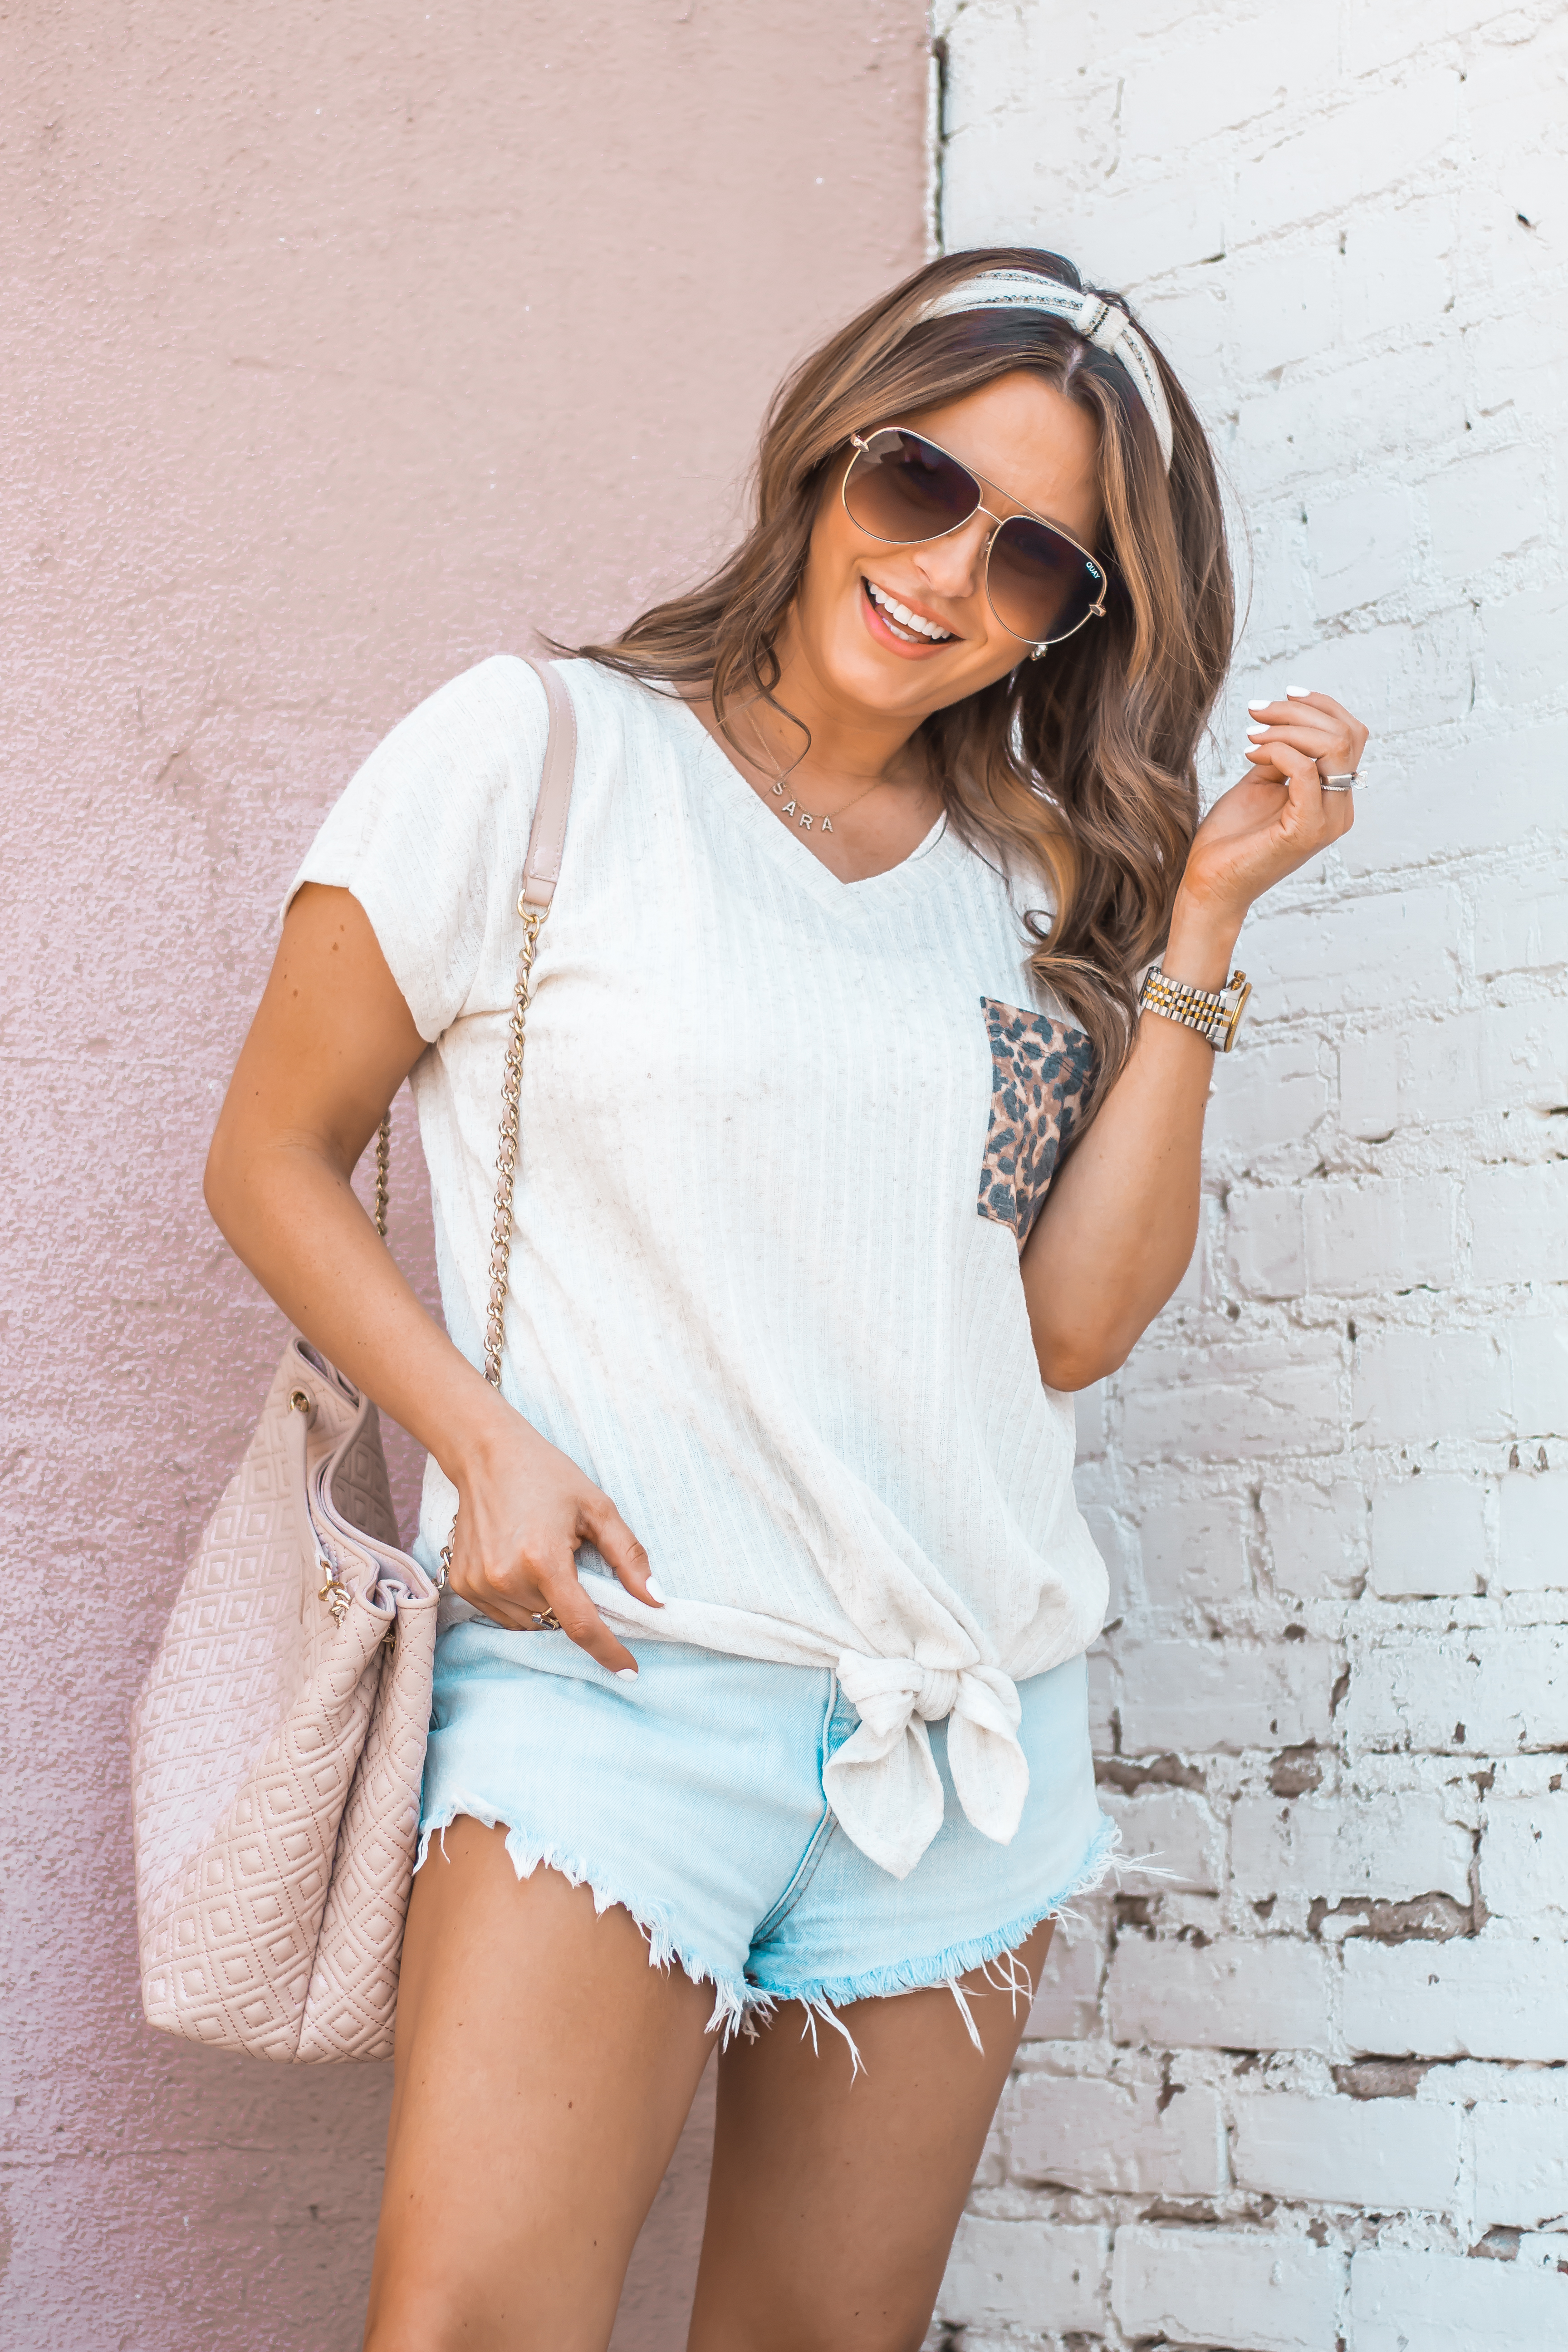 Women's Fashion-Summer Fashion-Summer Outfit Inspiration-Sabby Style-Omaha Blogger-Leopard Pocket Top-The Style Bar Boutique-Cutoff Shorts-Espadrille Wedges-Marc Fisher Wedges-Tory Burch Fleming-Quay Sunglasses-Headband Trend-Omaha-Nebraska-Midwest Blogger-4